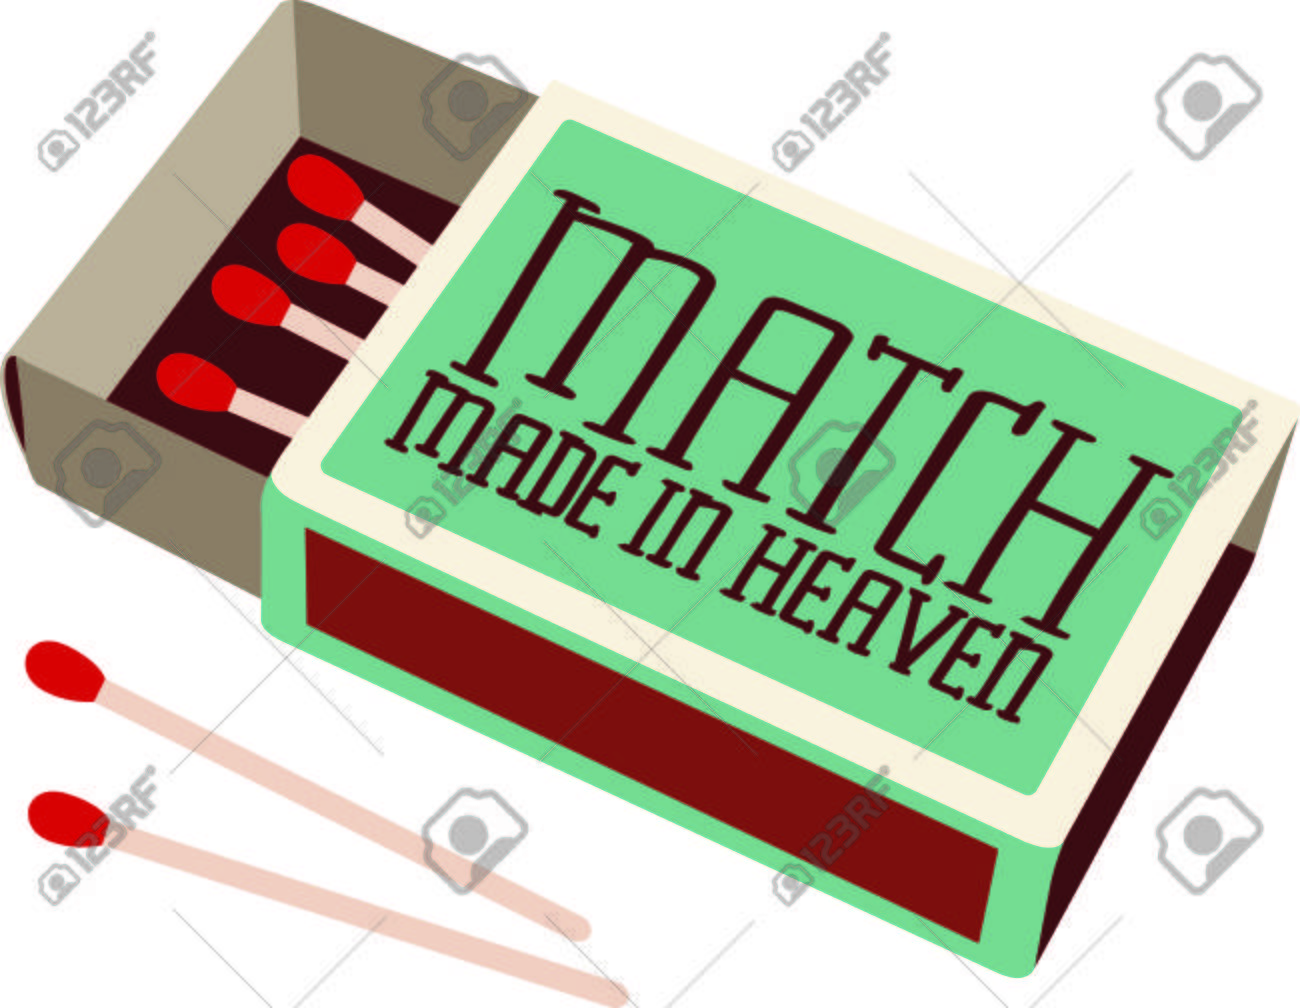 Retro Style Design Decorates This Box Of Wooden Matches. A Cleaver ... for Matches Clip Art  284dqh